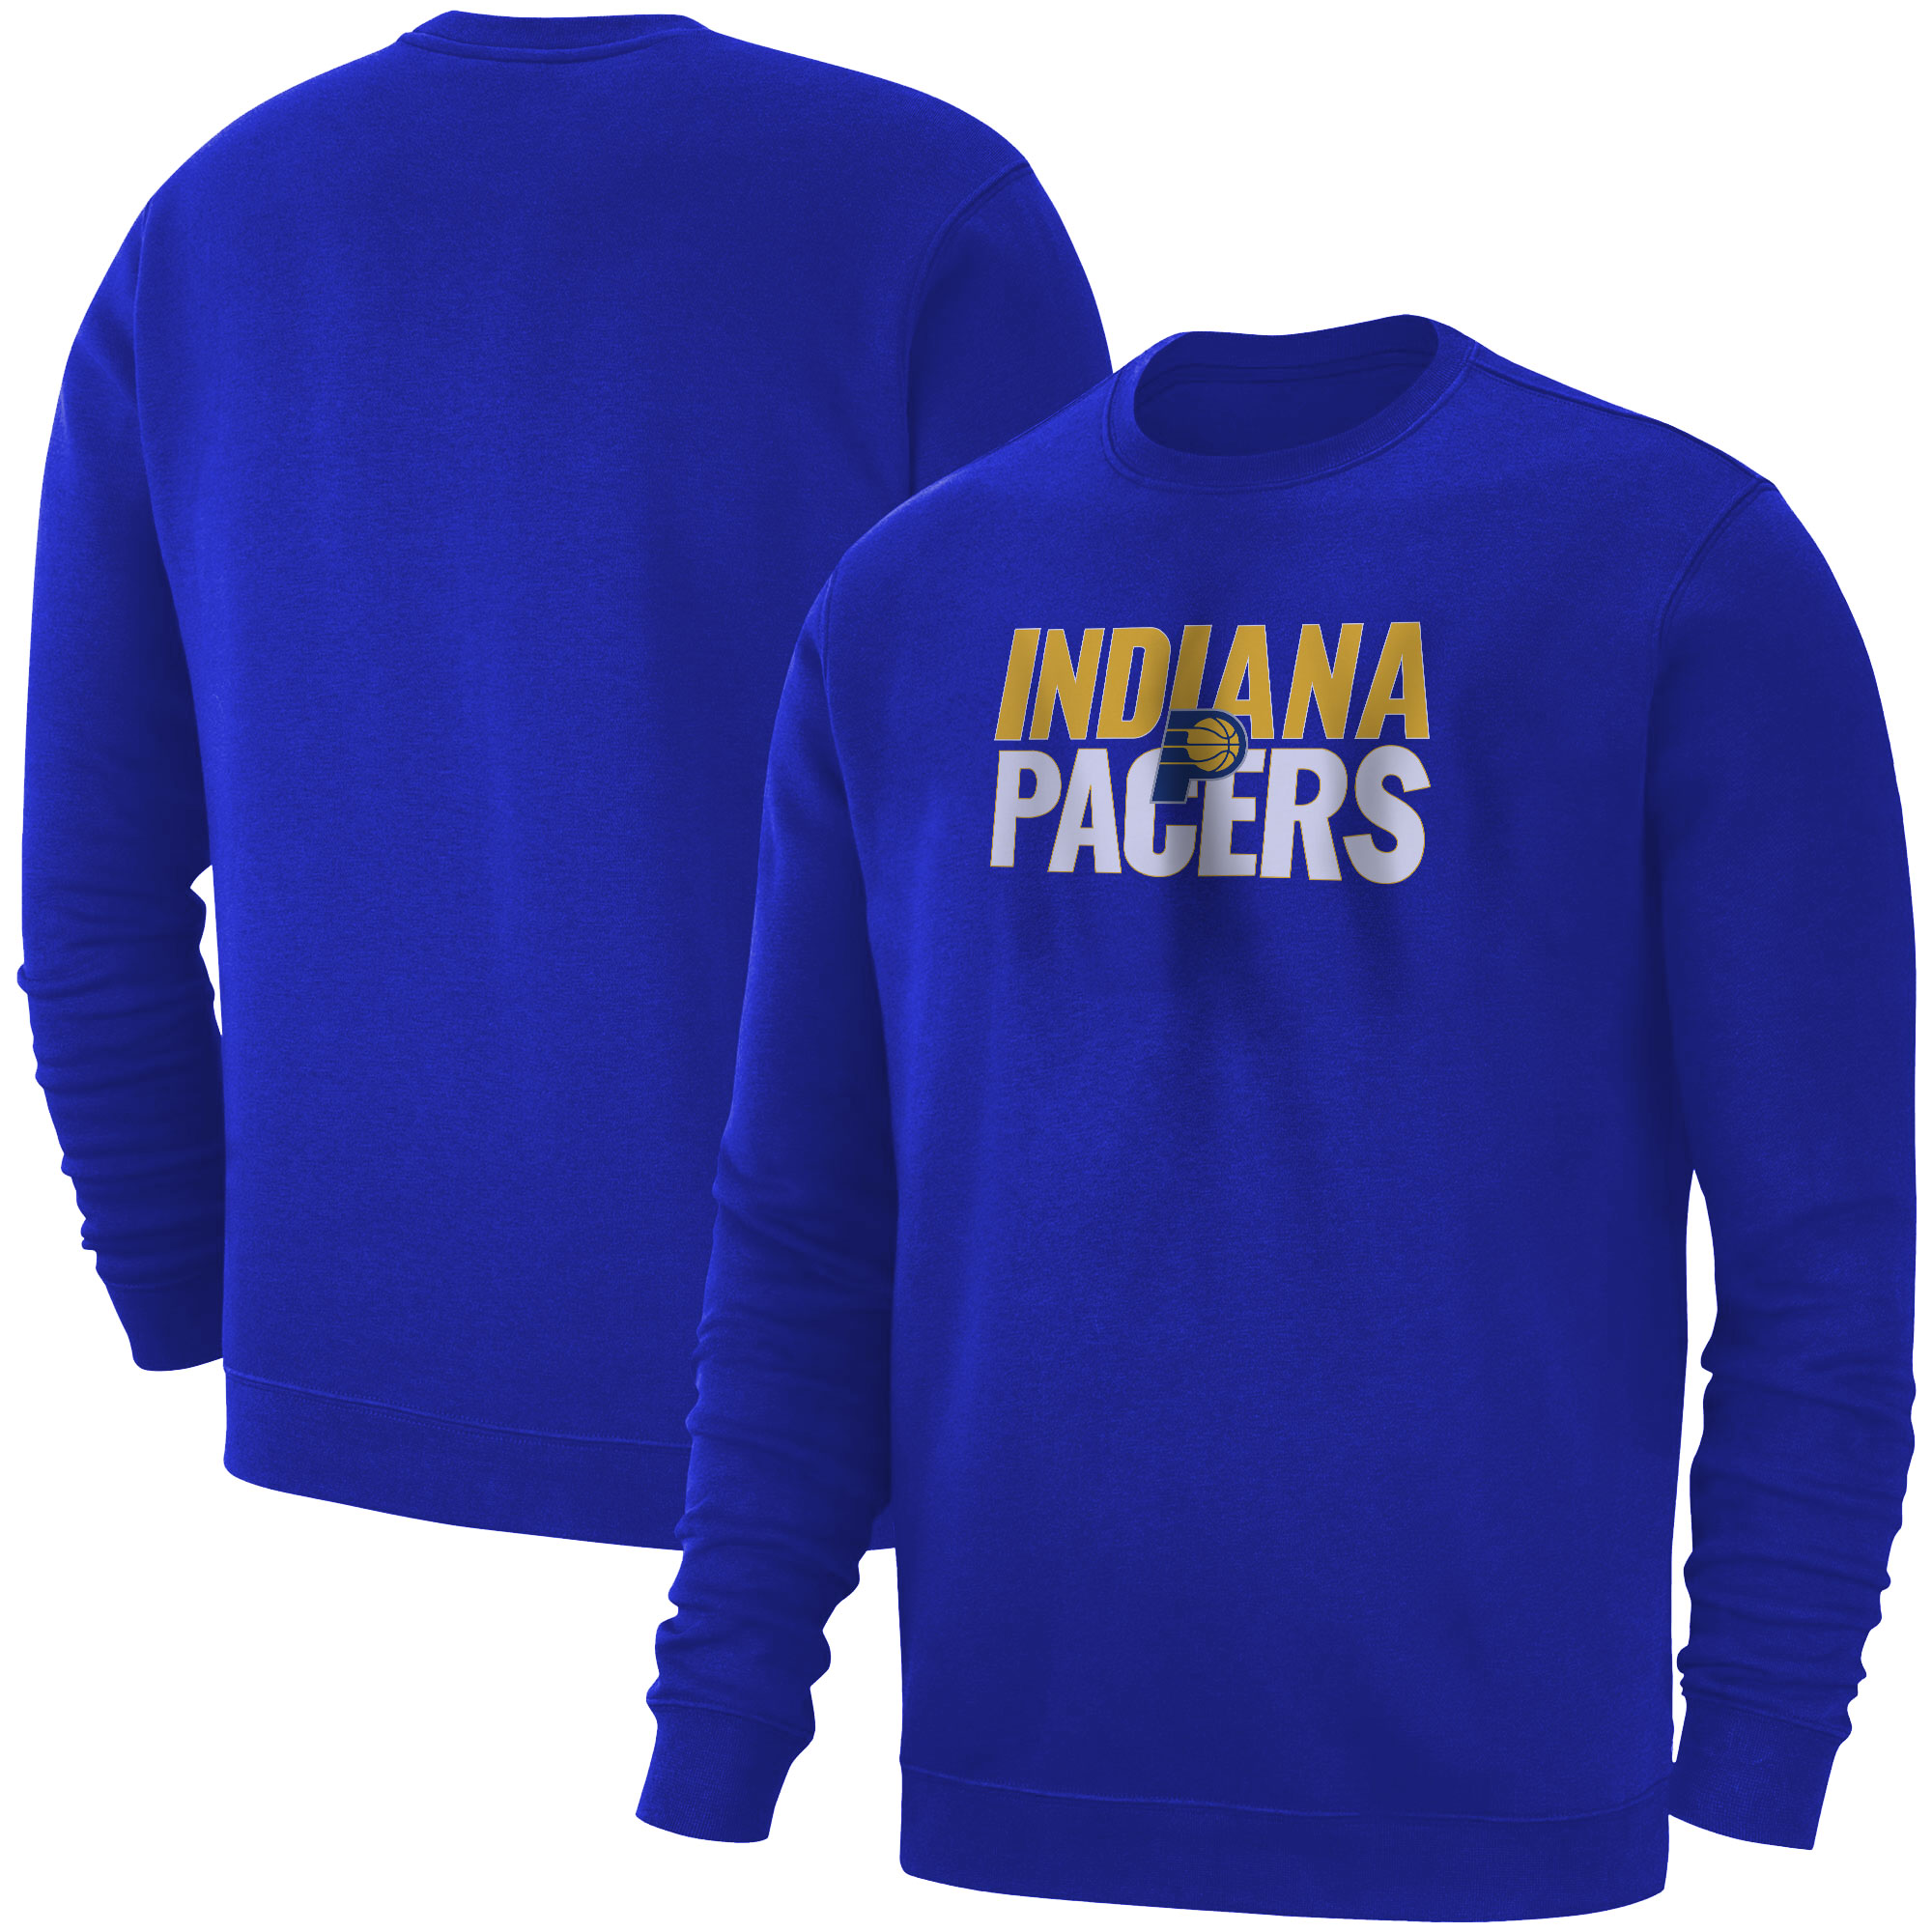 Indiana Pacers Basic (BSC-BLC-401-NBA-IND-)